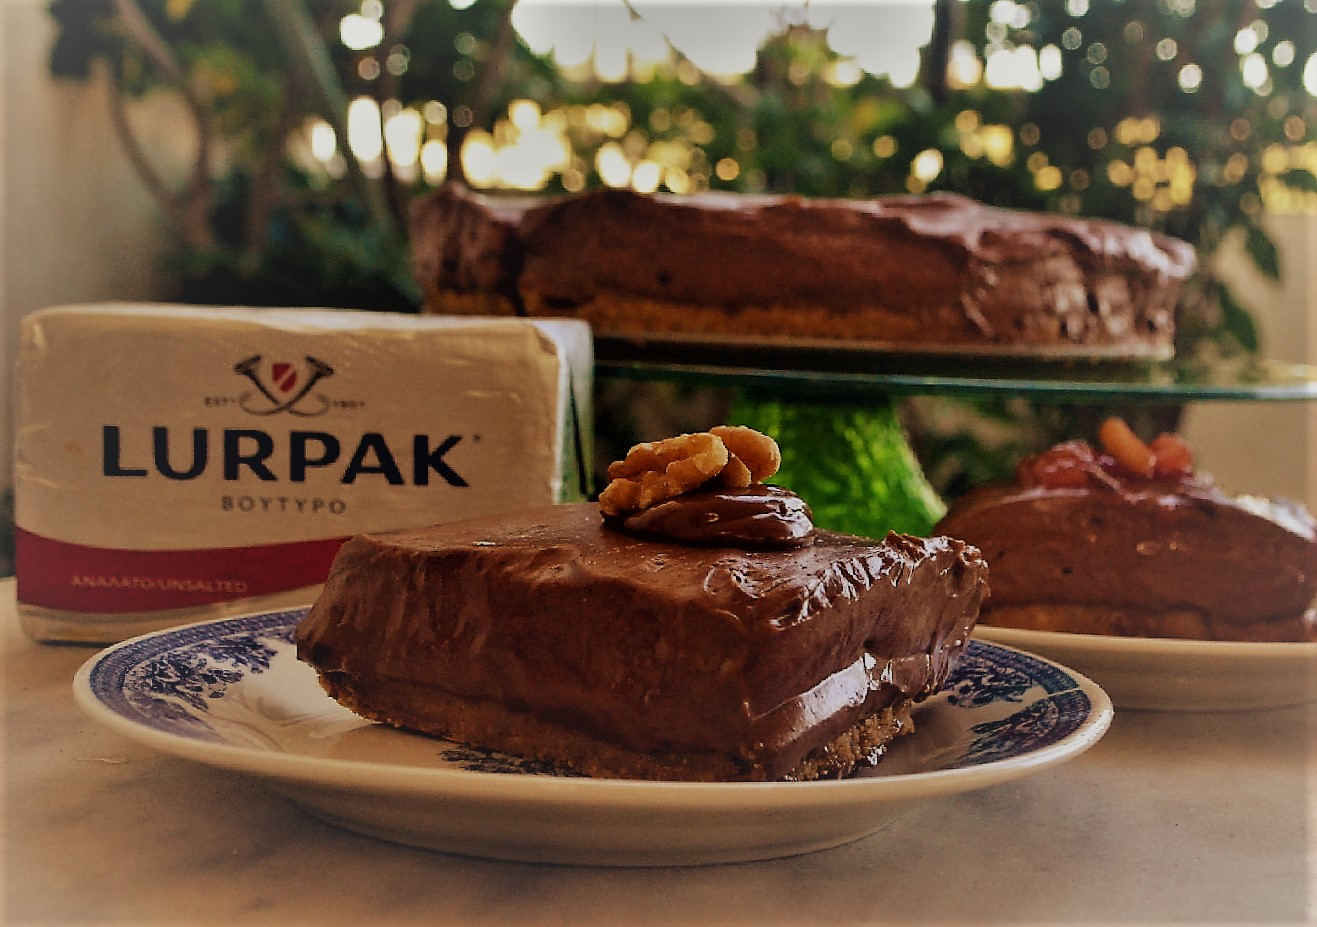 cheesecake-sokolata-lurpak-8edited